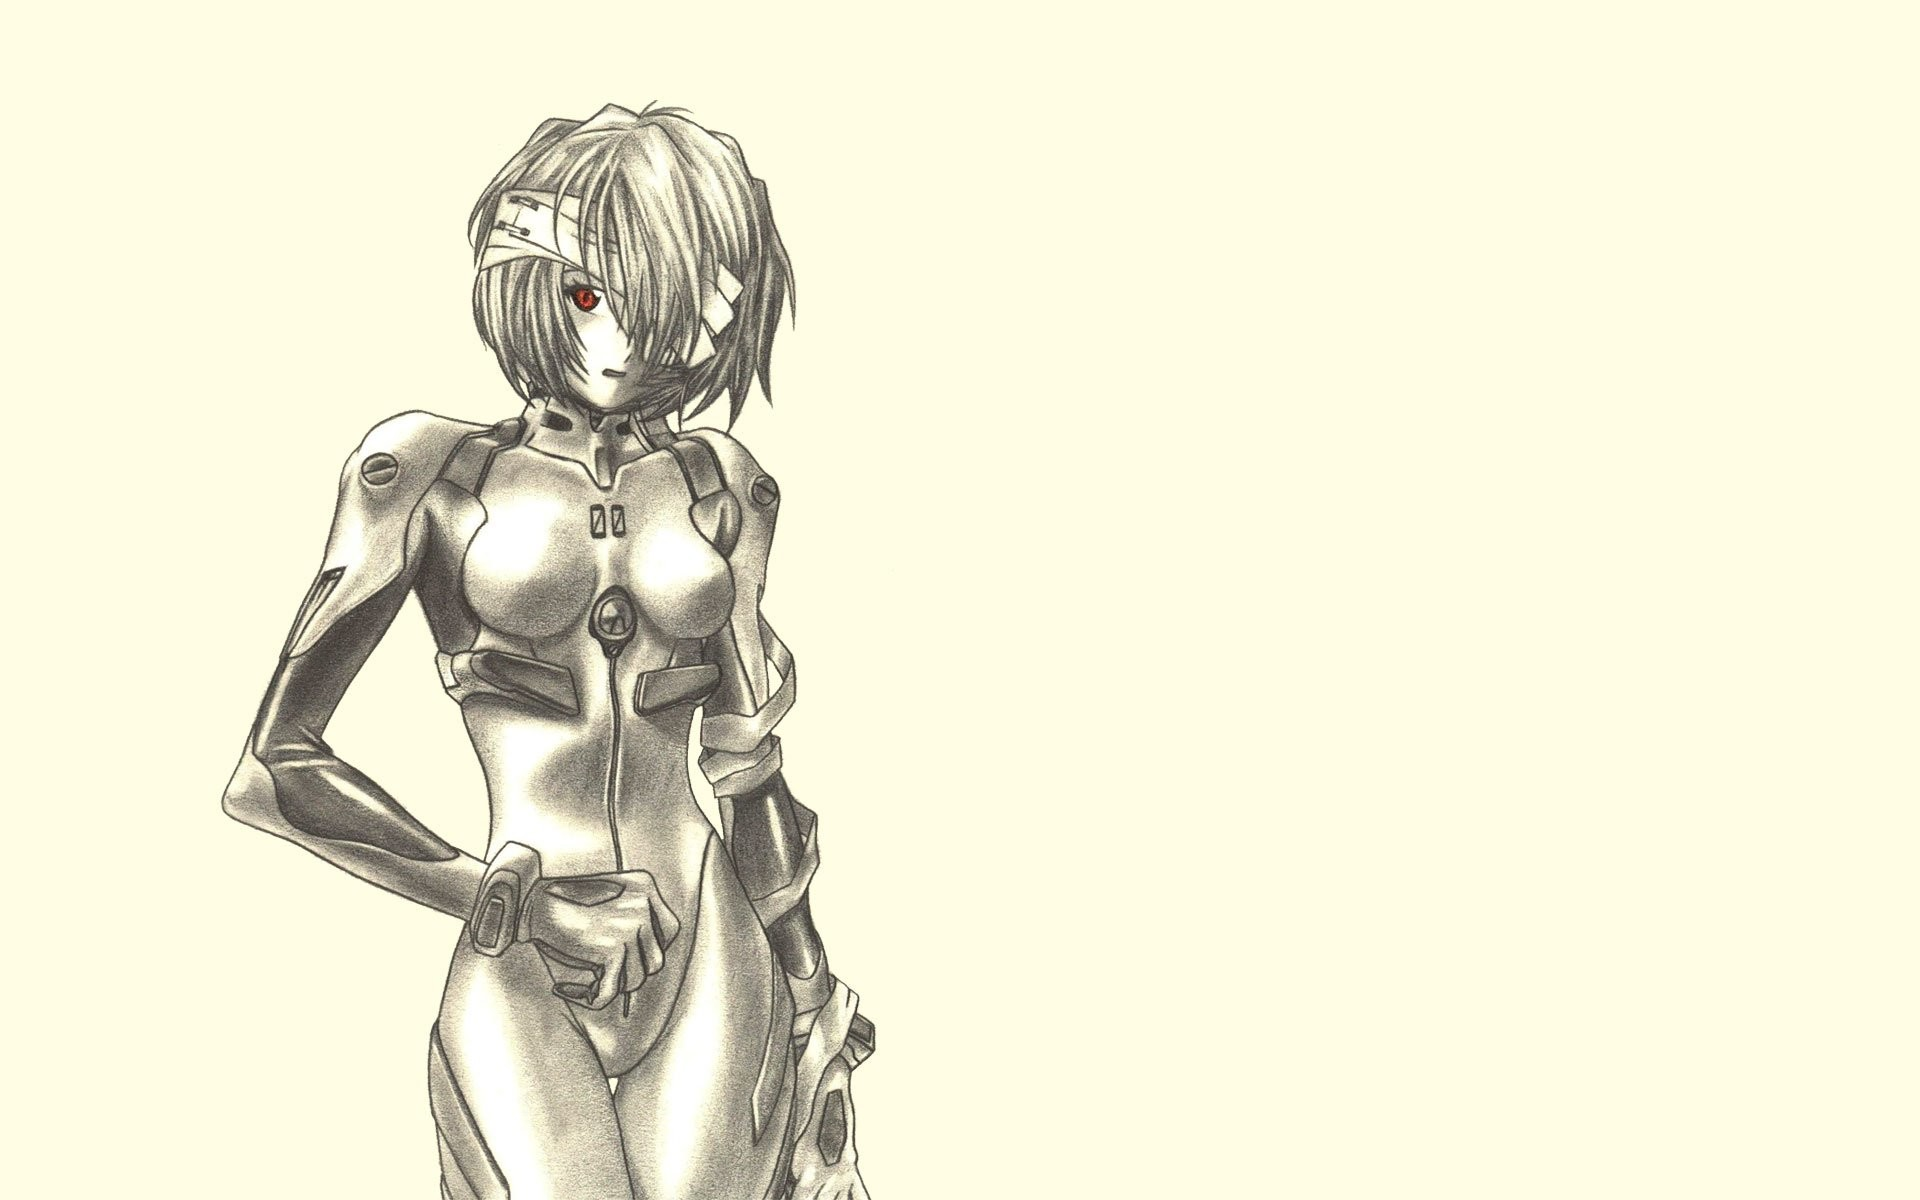 1920x1200 Ayanami Rei Neon Genesis Evangelion Drawings Fan Art Simple Background ...